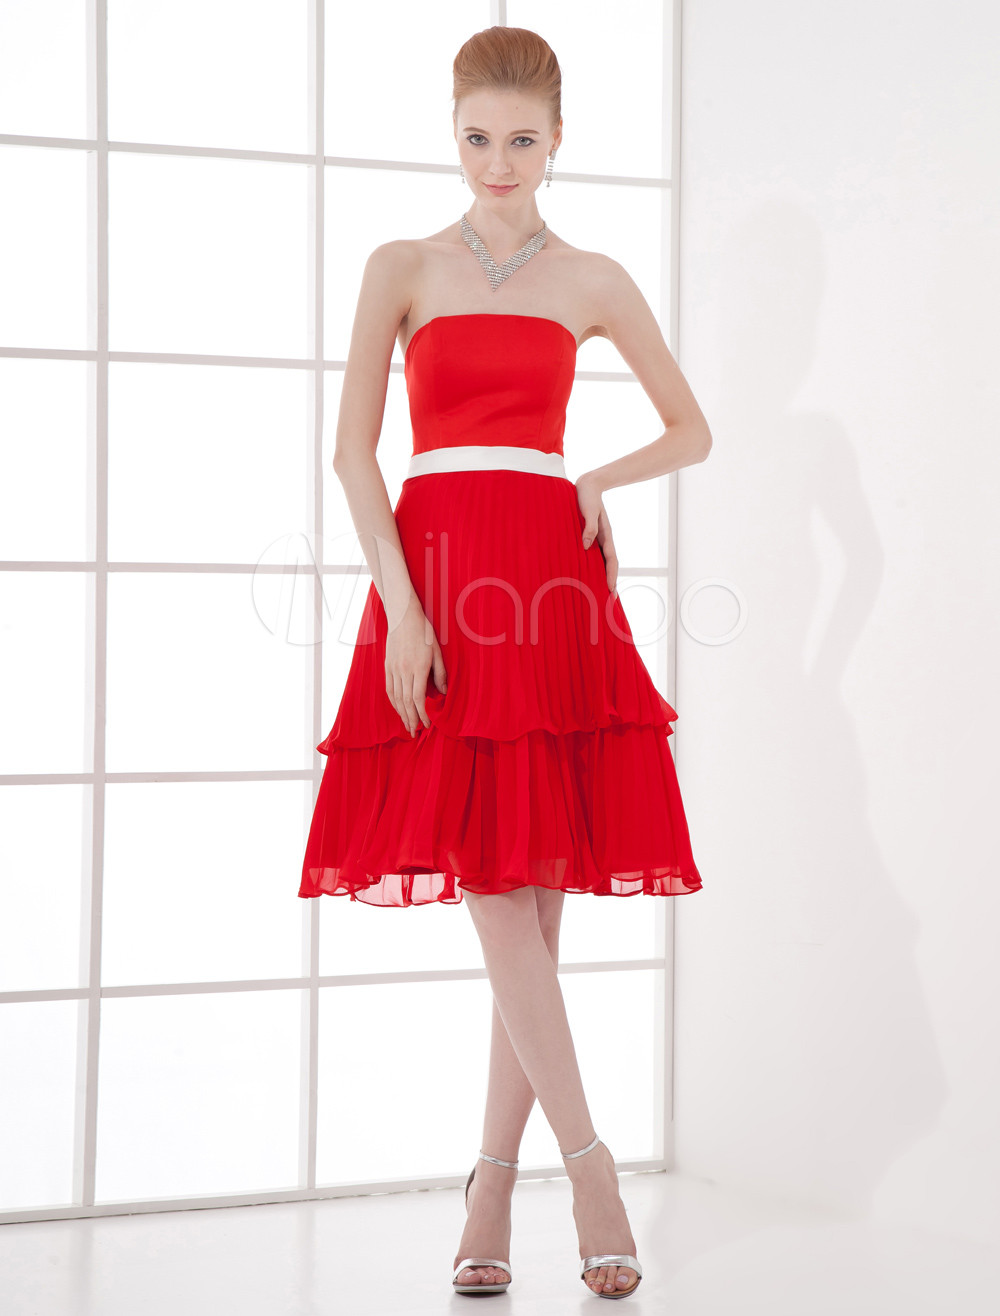 Buy A-line Red Chiffon Bow Strapless Knee-Length Fashion Cocktail Dress for $79.89 in Milanoo store